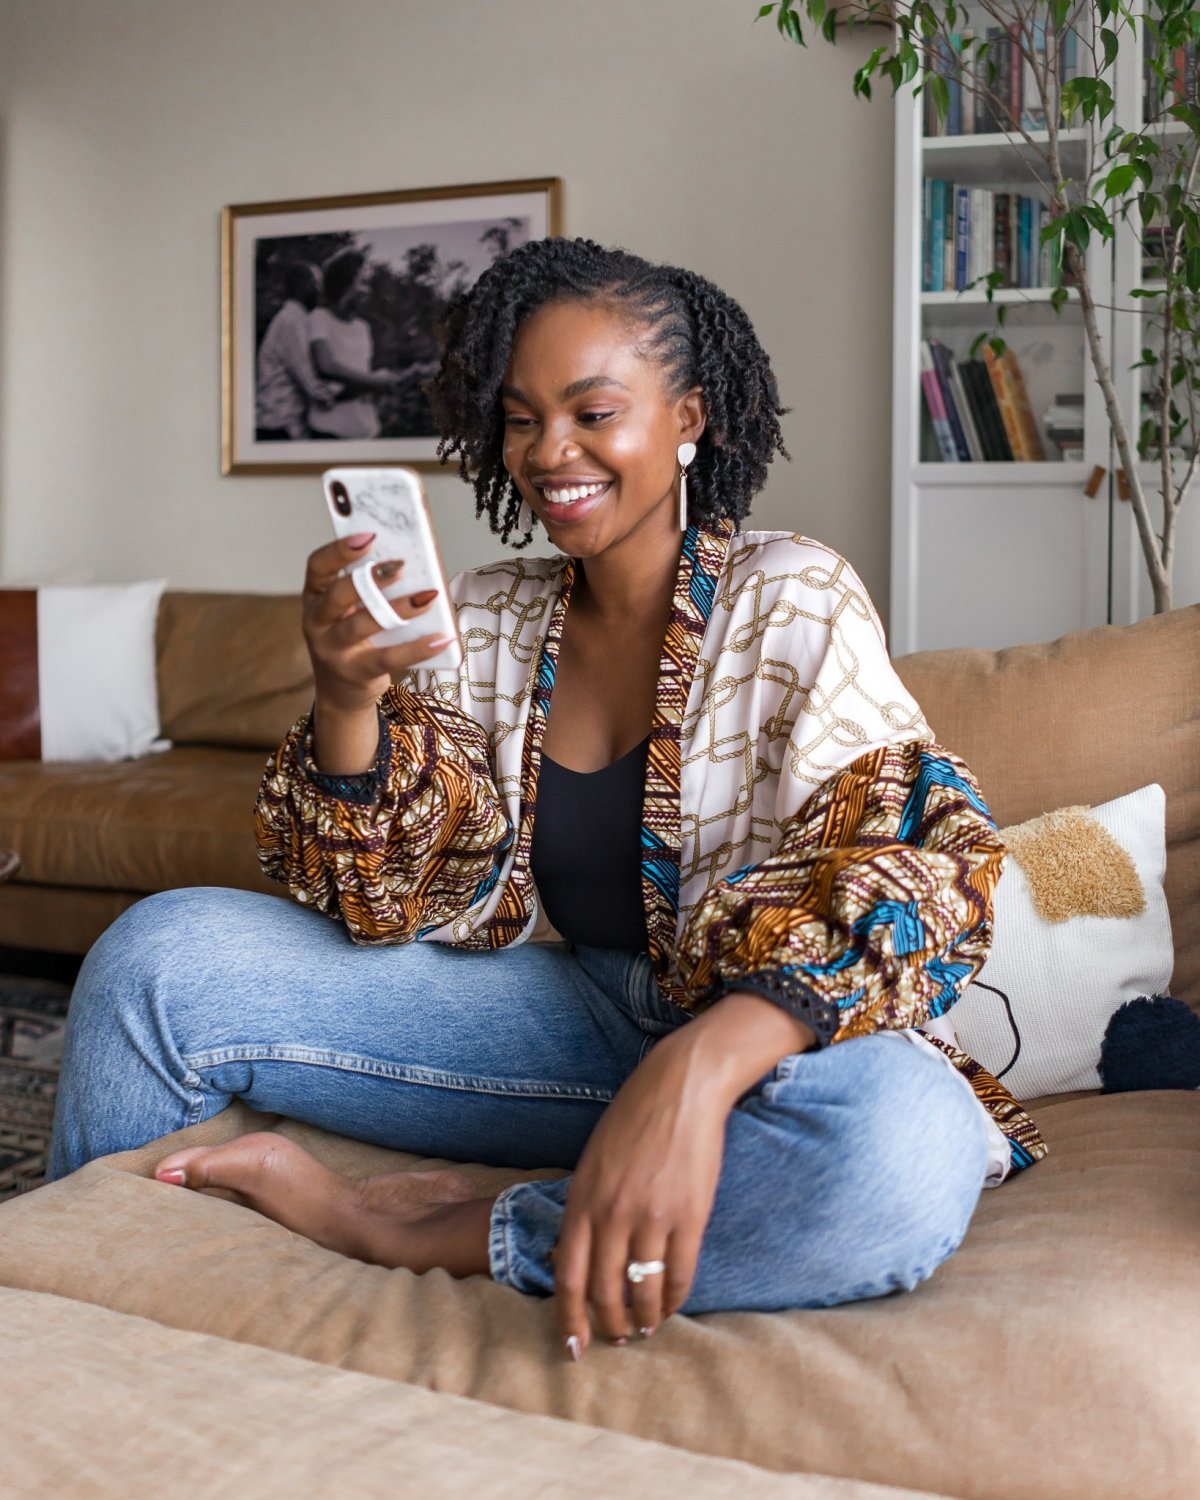 Ijeoma Kola sitting barefoot on couch and smiling while scrolling through her phone - Ijeoma Kola monthly Q&A January 2021